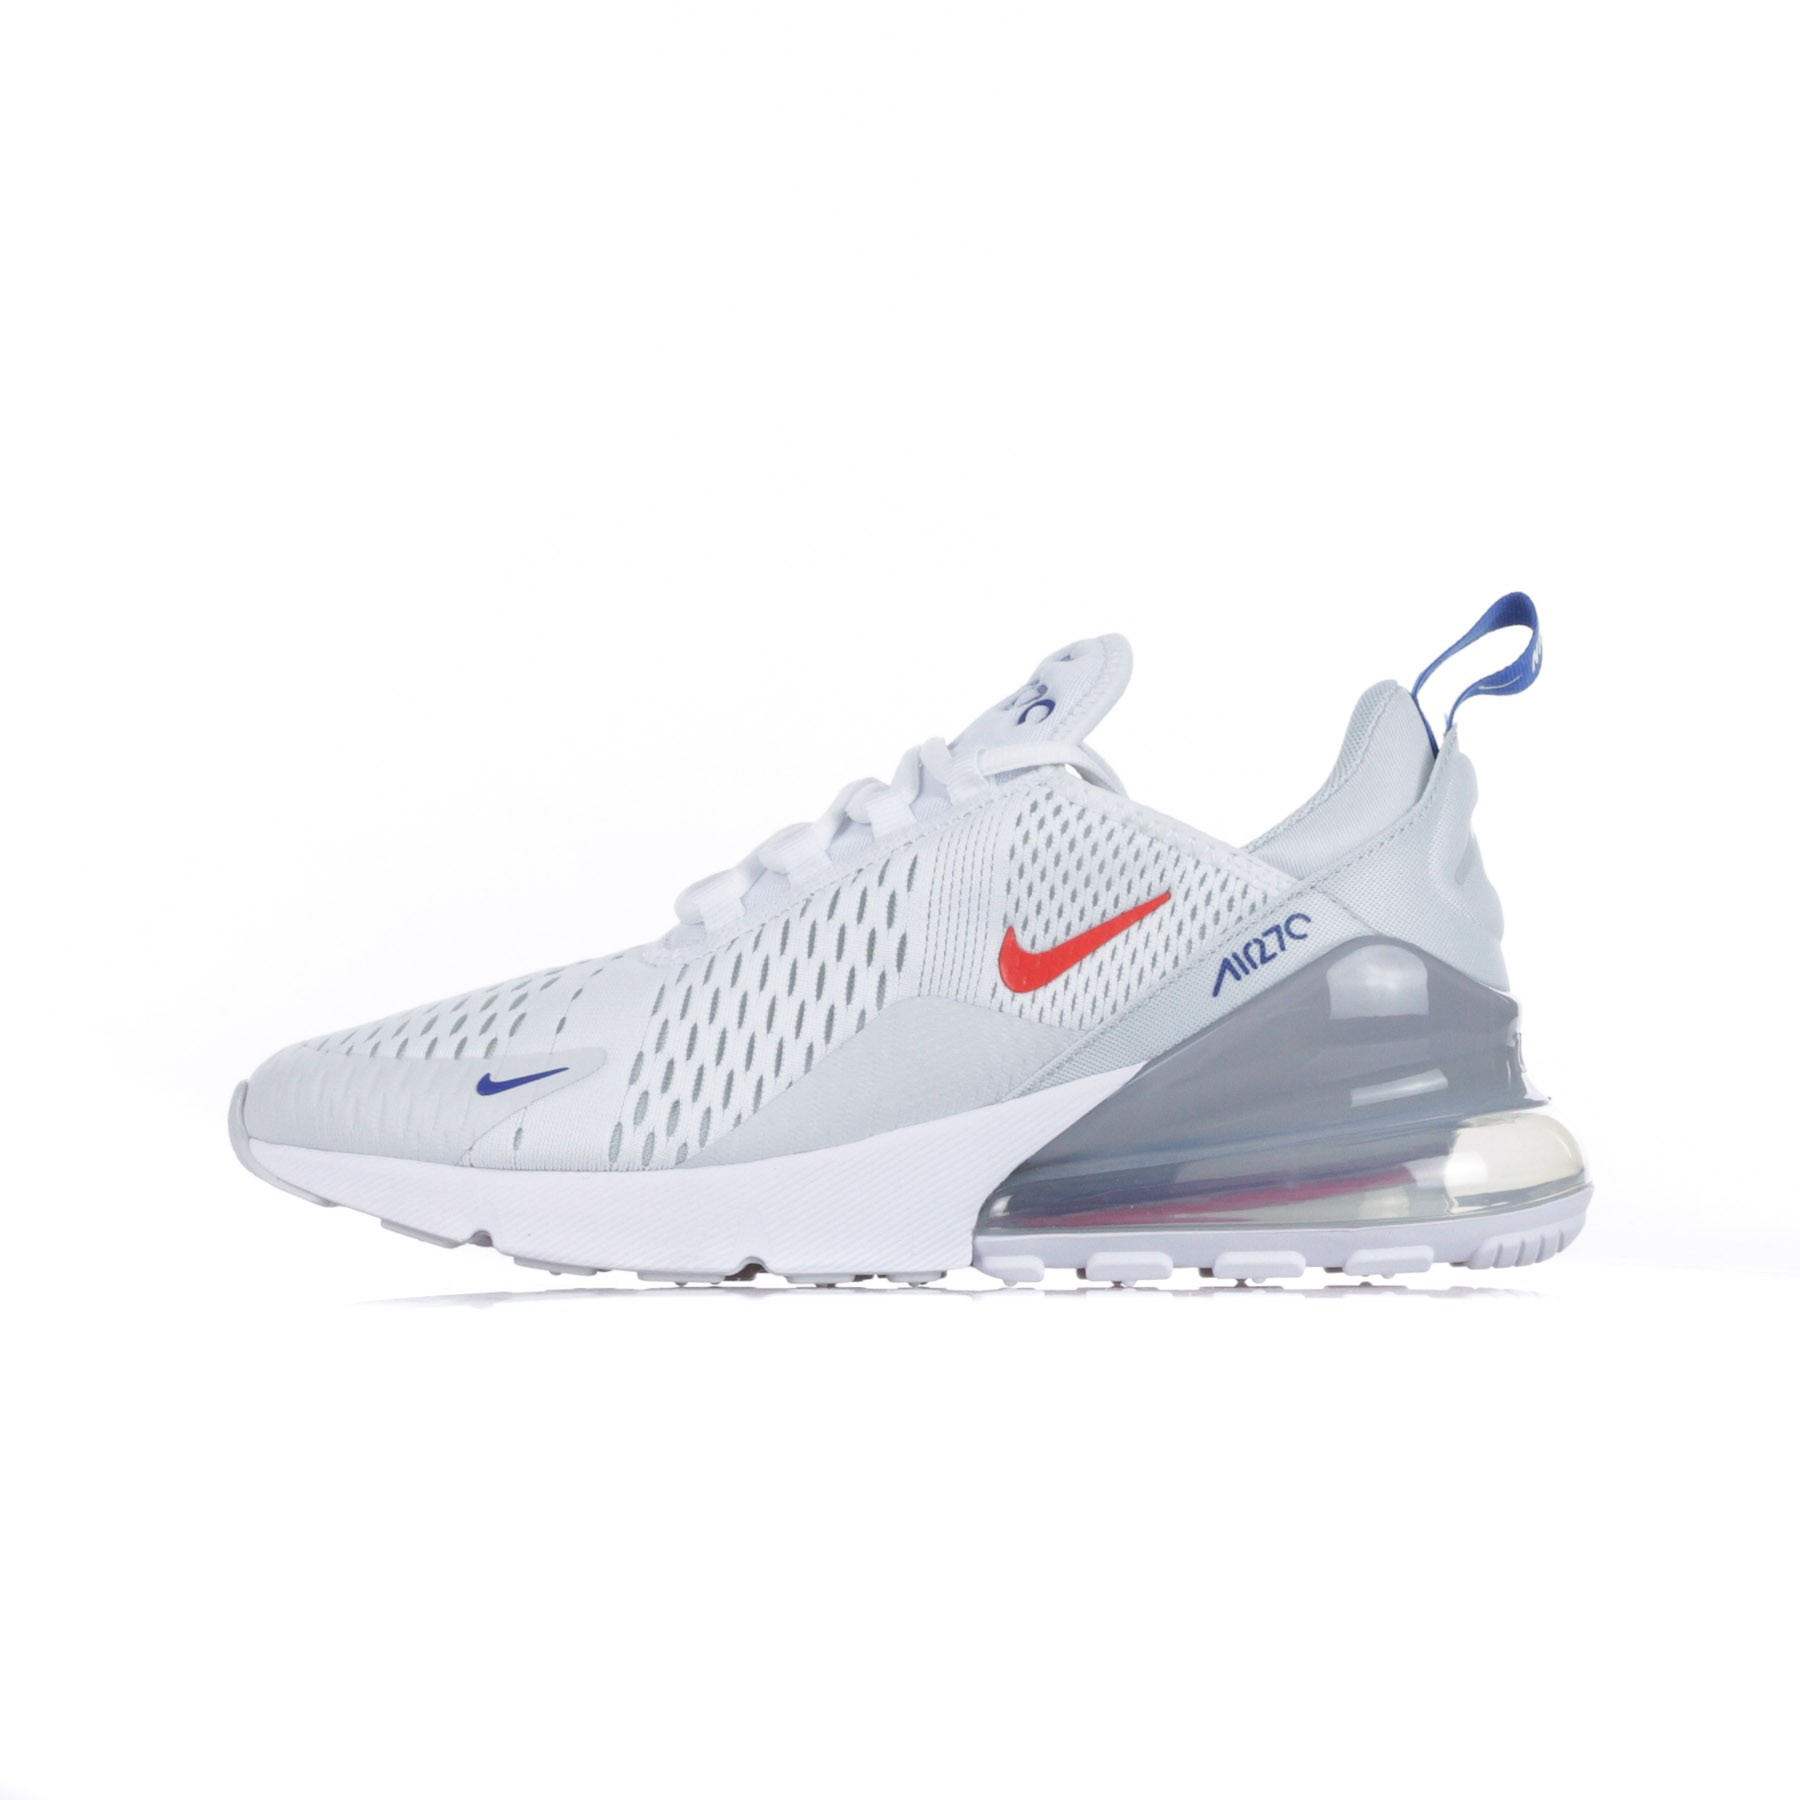 nike AIR MAX 270 WHITEHABANERO RED PURE PLATINUM bei